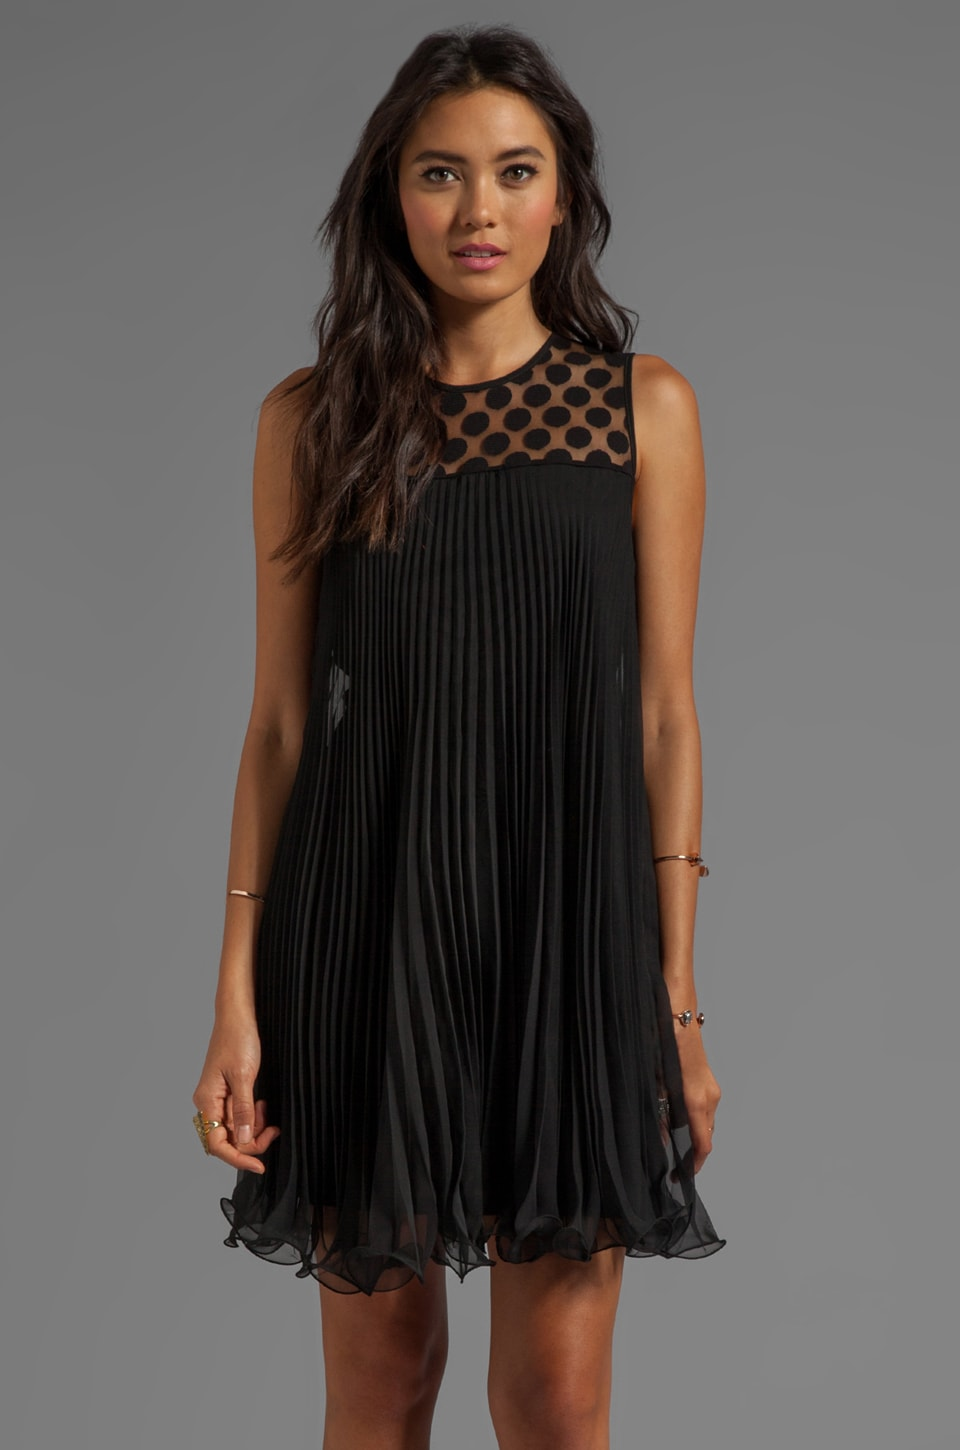 MILLY Gumball Dot Lace Carolyn Pleated Dress in Black